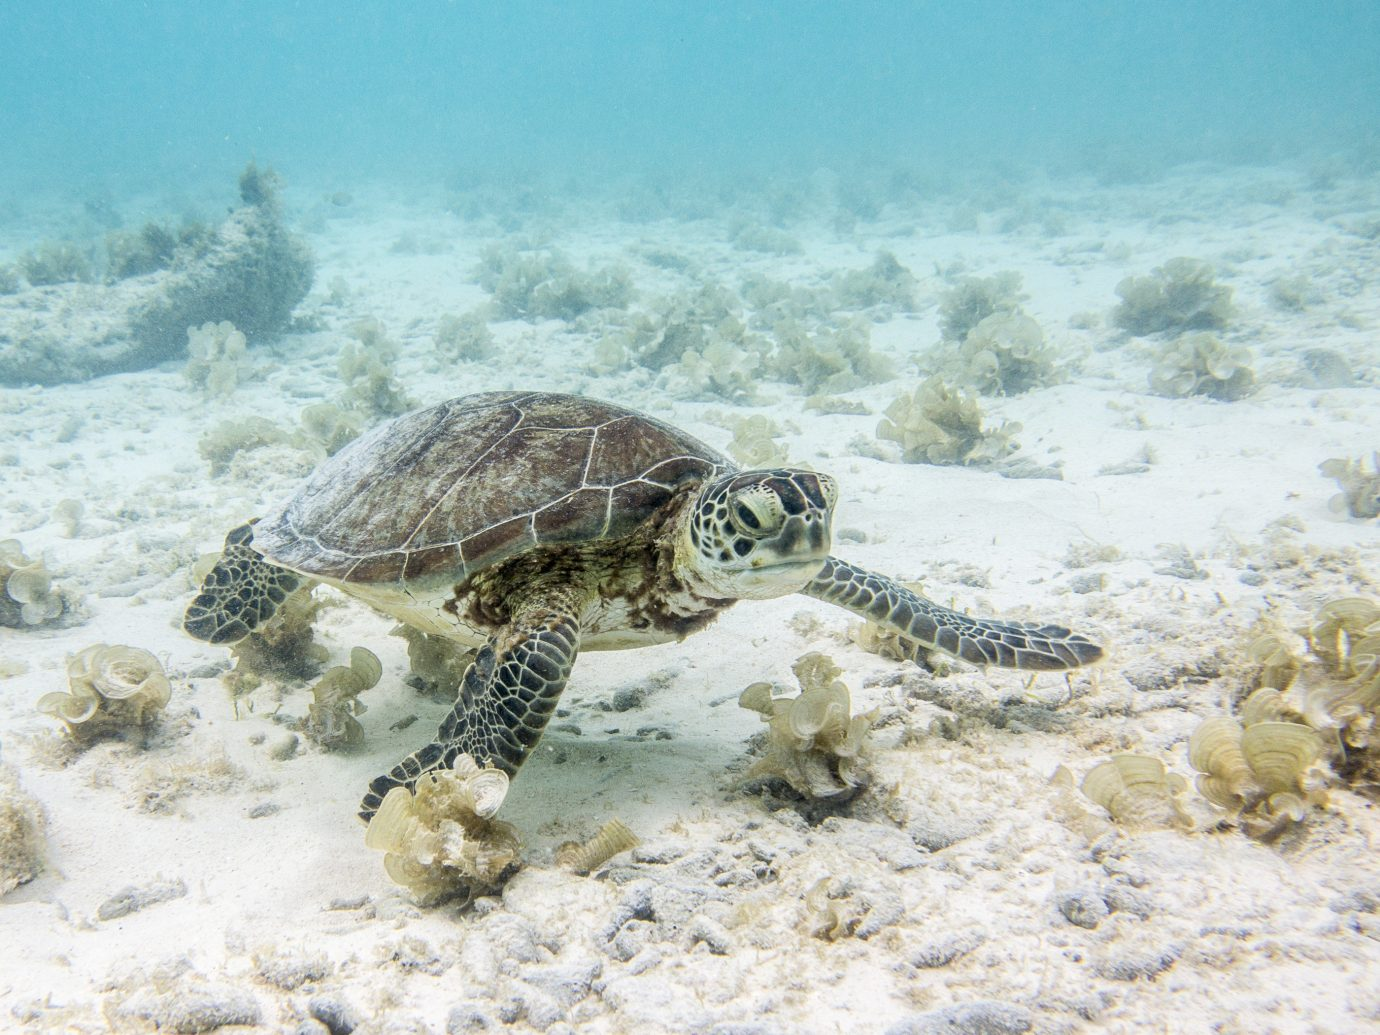 Beaches caribbean Trip Ideas reptile turtle sea turtle animal outdoor vertebrate marine biology loggerhead fauna biology underwater Wildlife Sea coral reef ocean floor